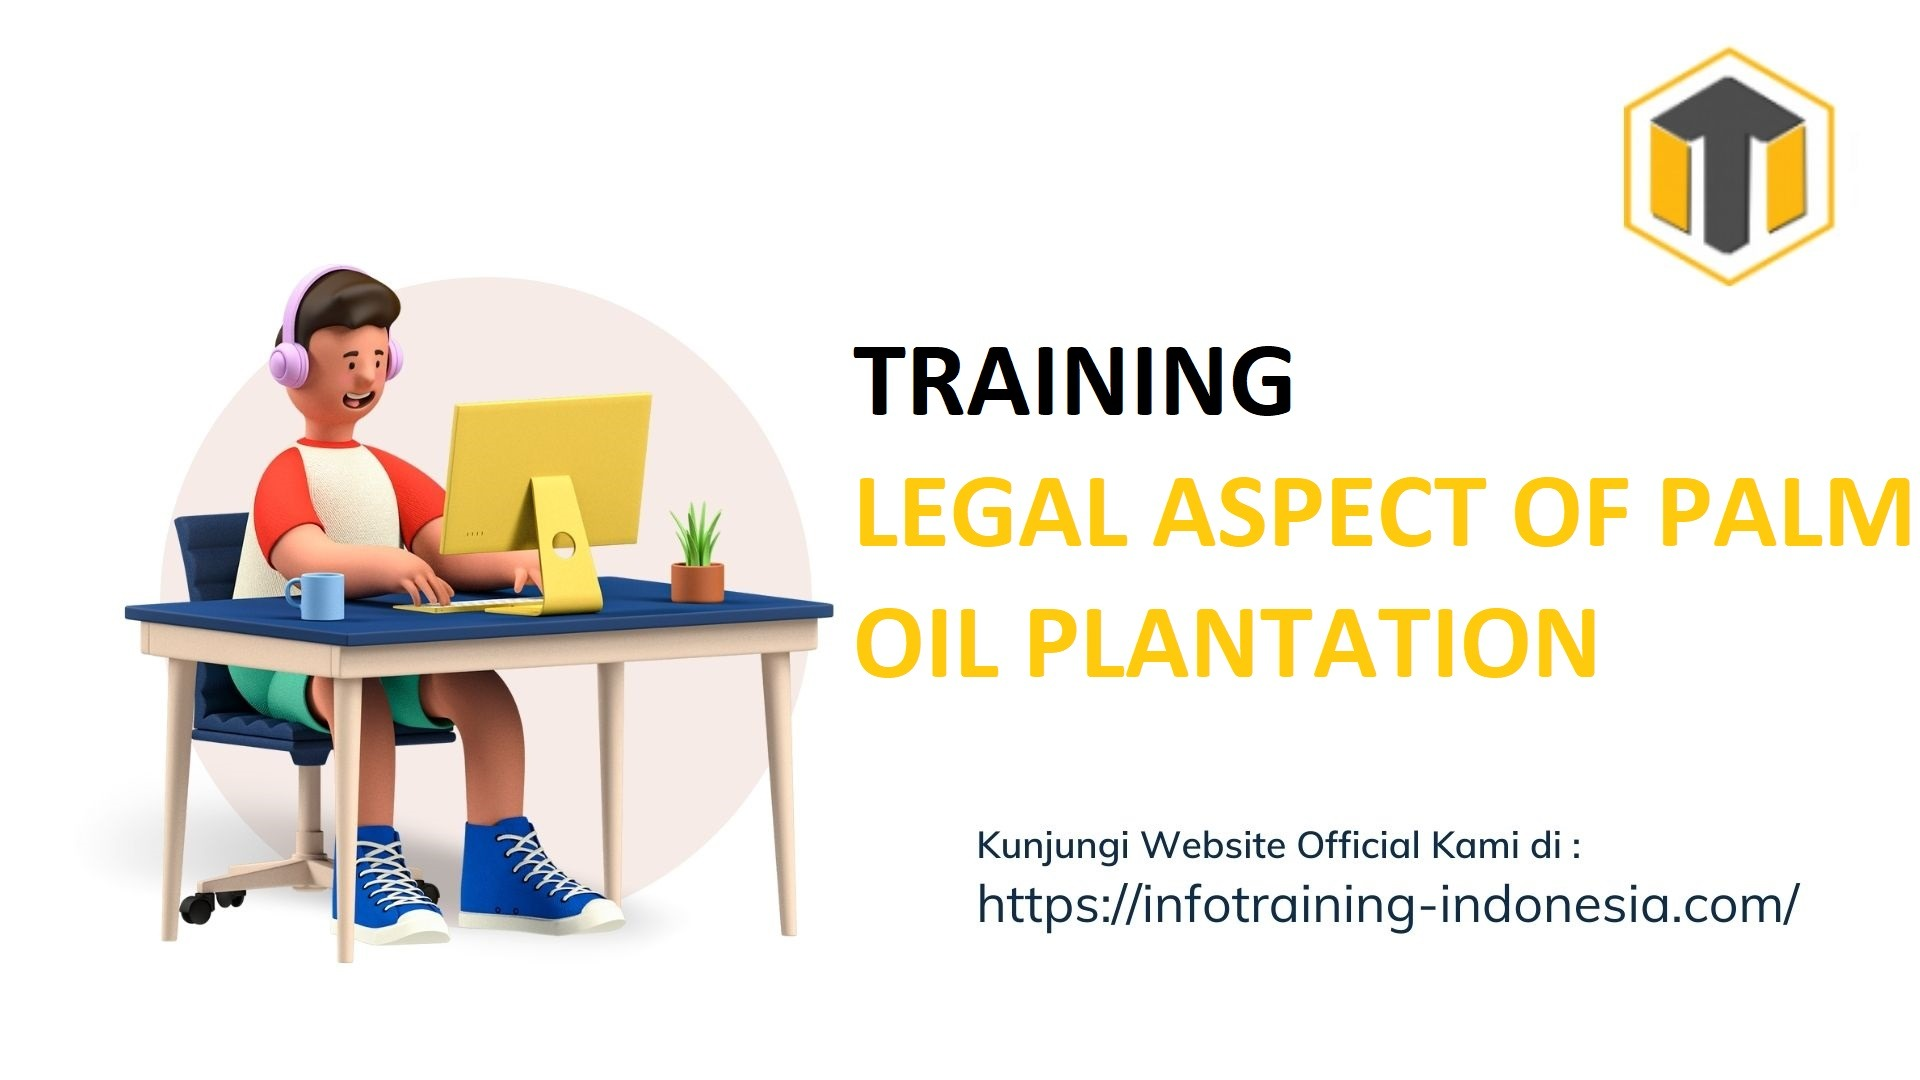 TRAINING LEGAL ASPECT OF PALM OIL PLANTATION Training Based Industry